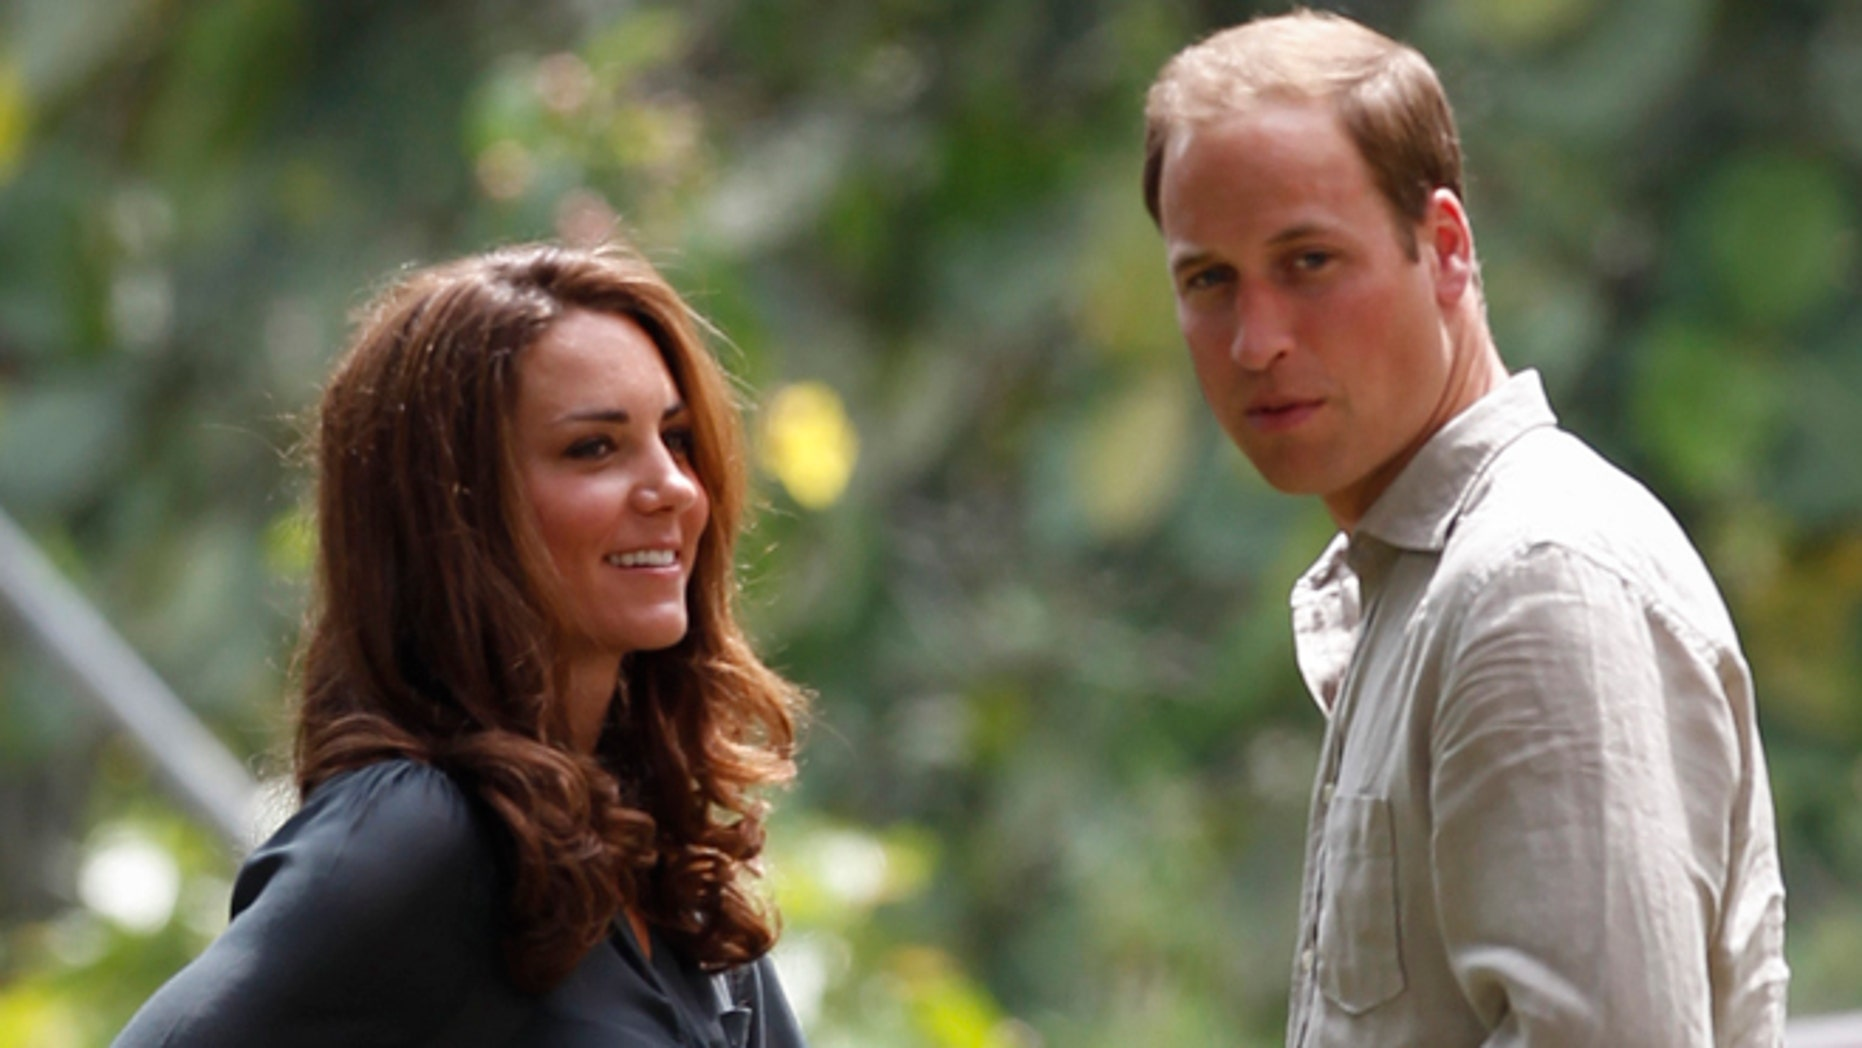 Sept. 15, 2012: Prince William and his wife Kate, the Duke and Duchess of Cambridge, in Danum Valley, Sabab, Malaysia.